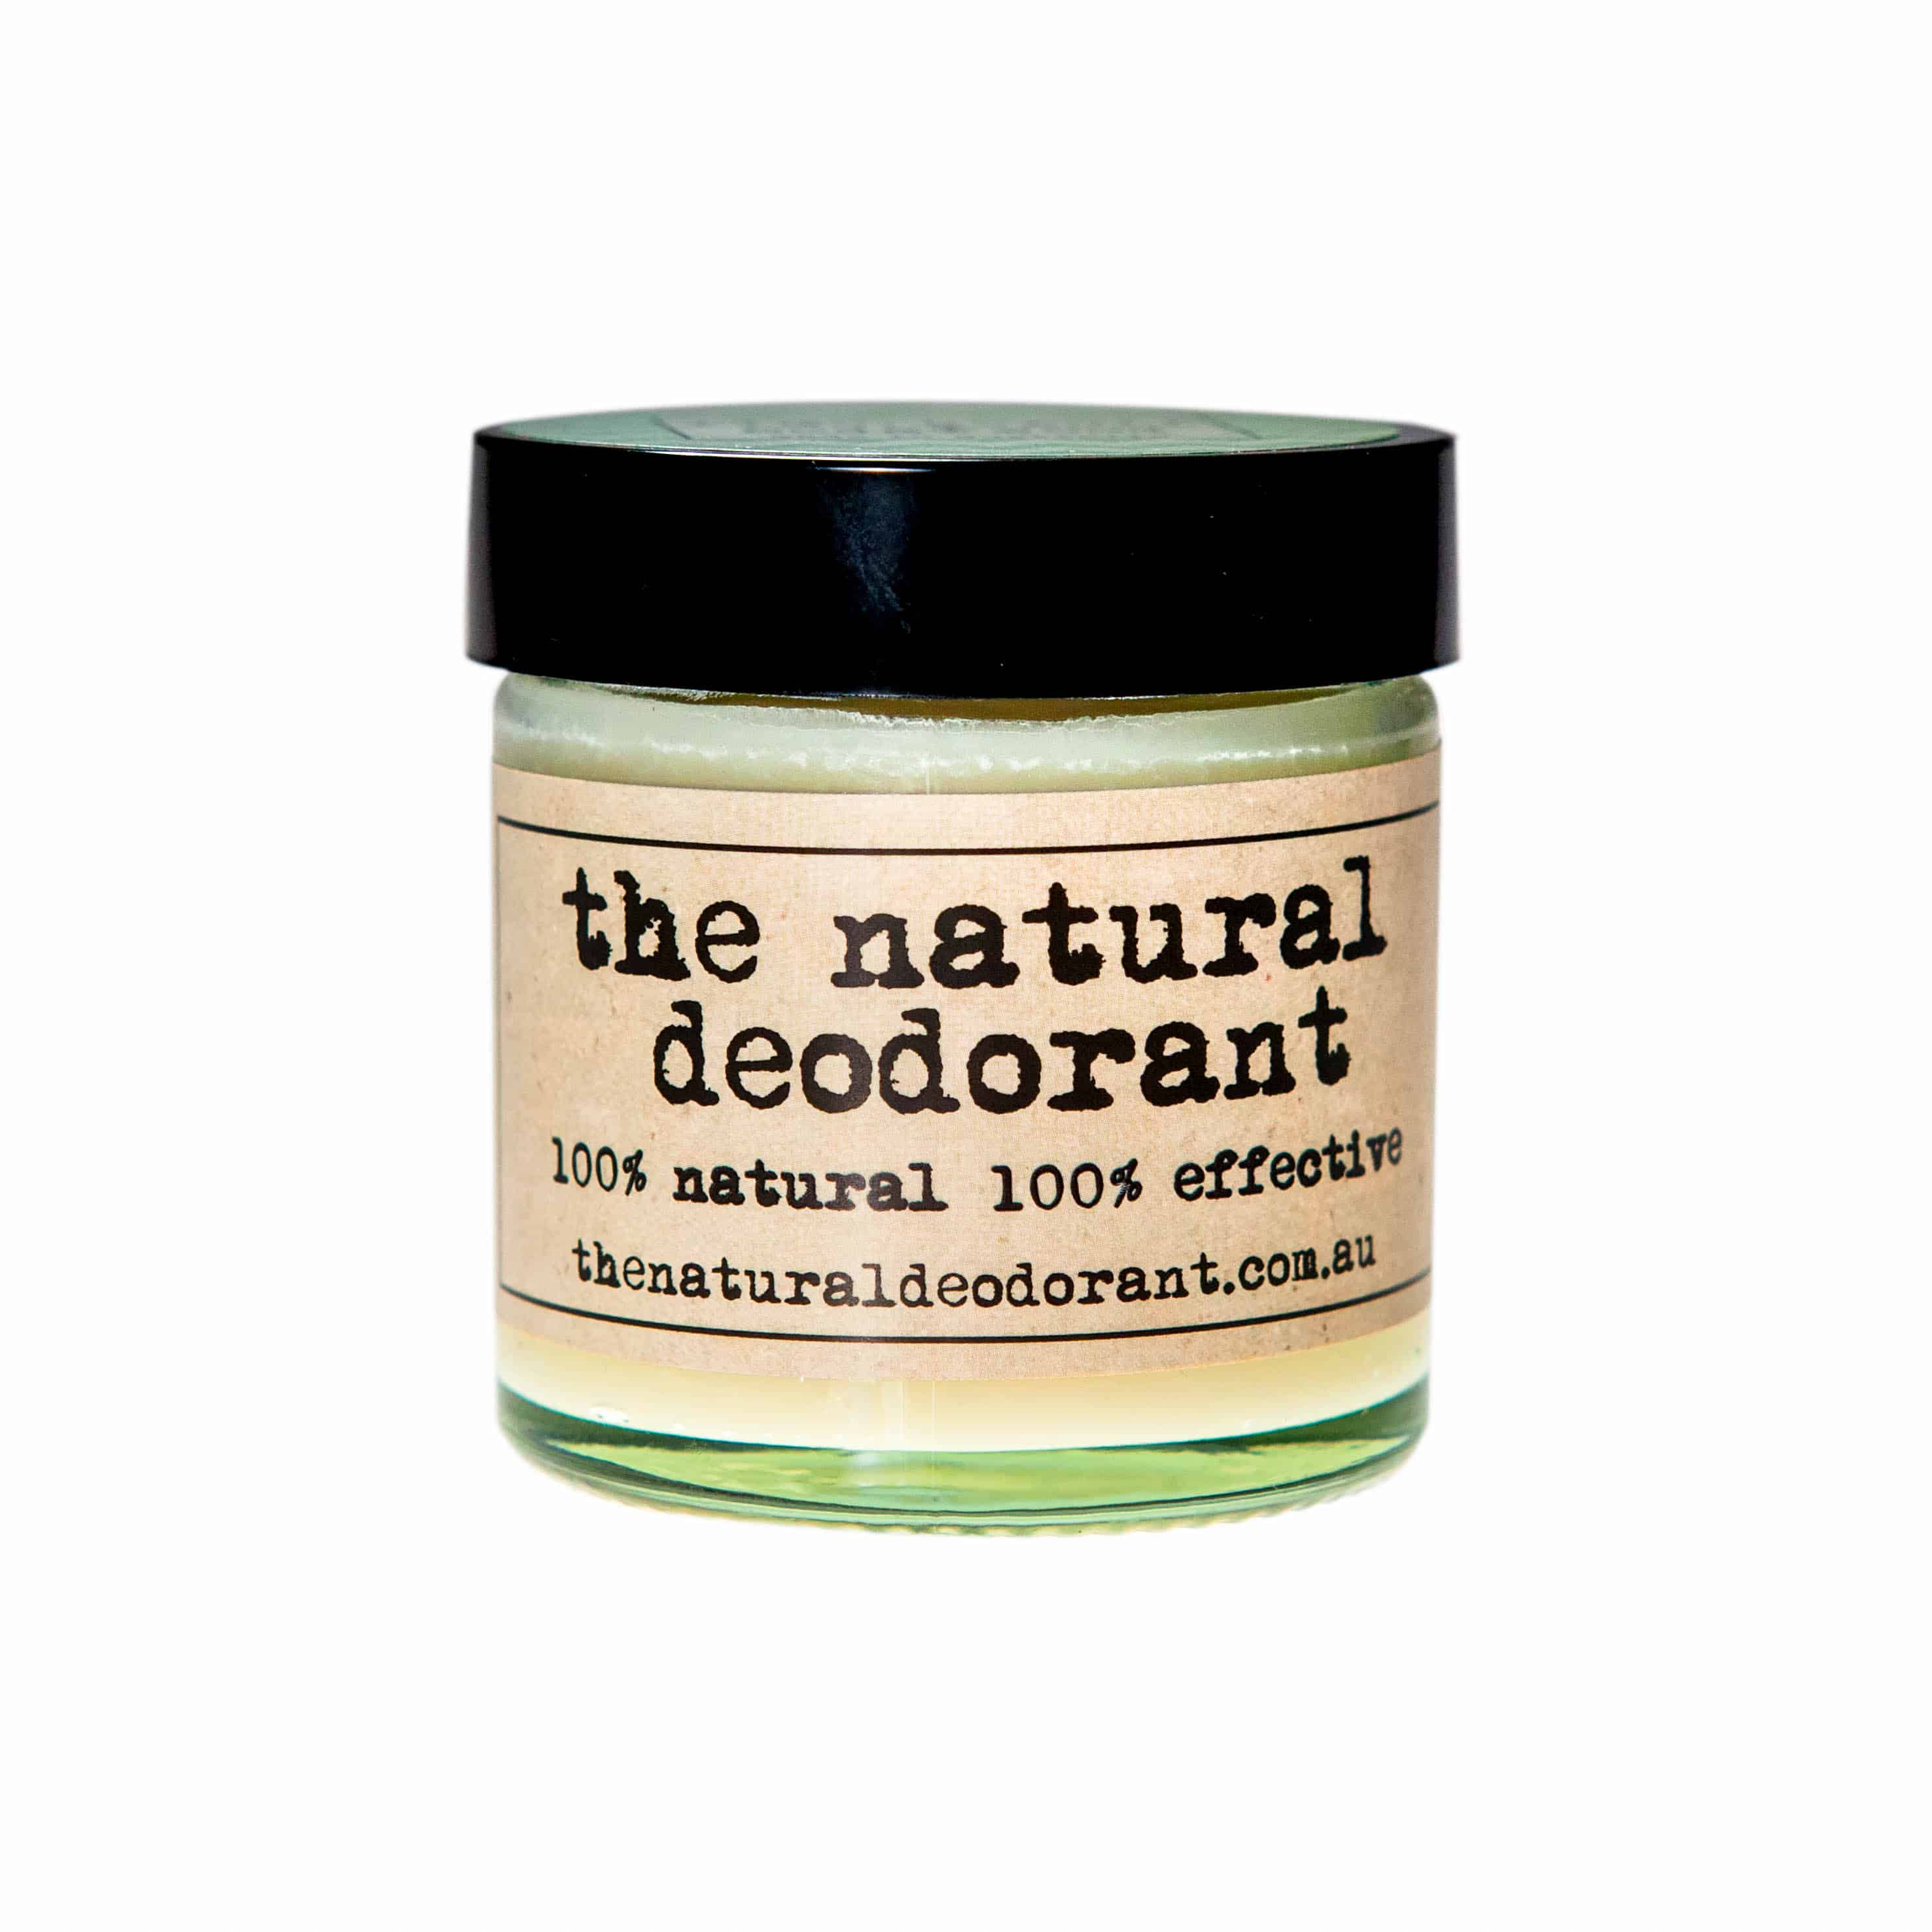 What is natural deodorant